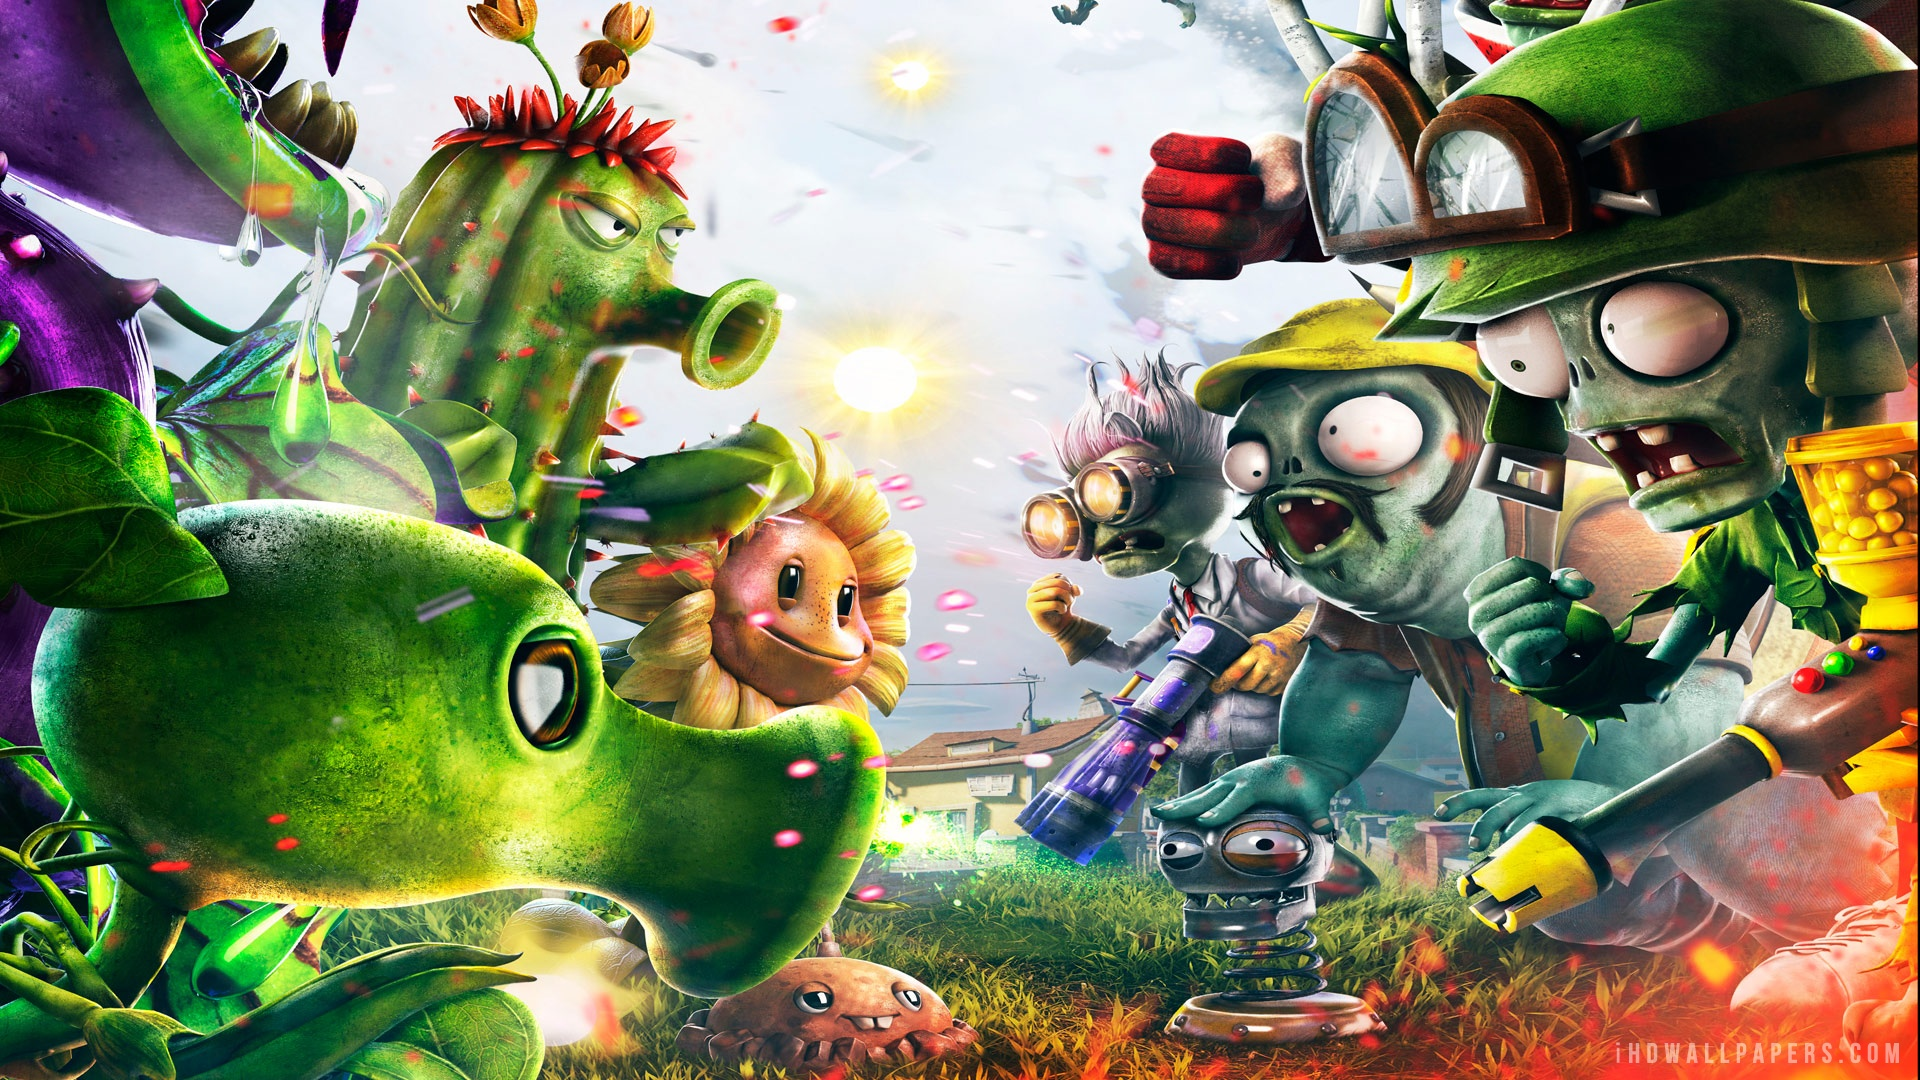 Comprar plants vs zombies garden warfare juego para pc origin download Plants vs zombies garden warfare 2 event calendar